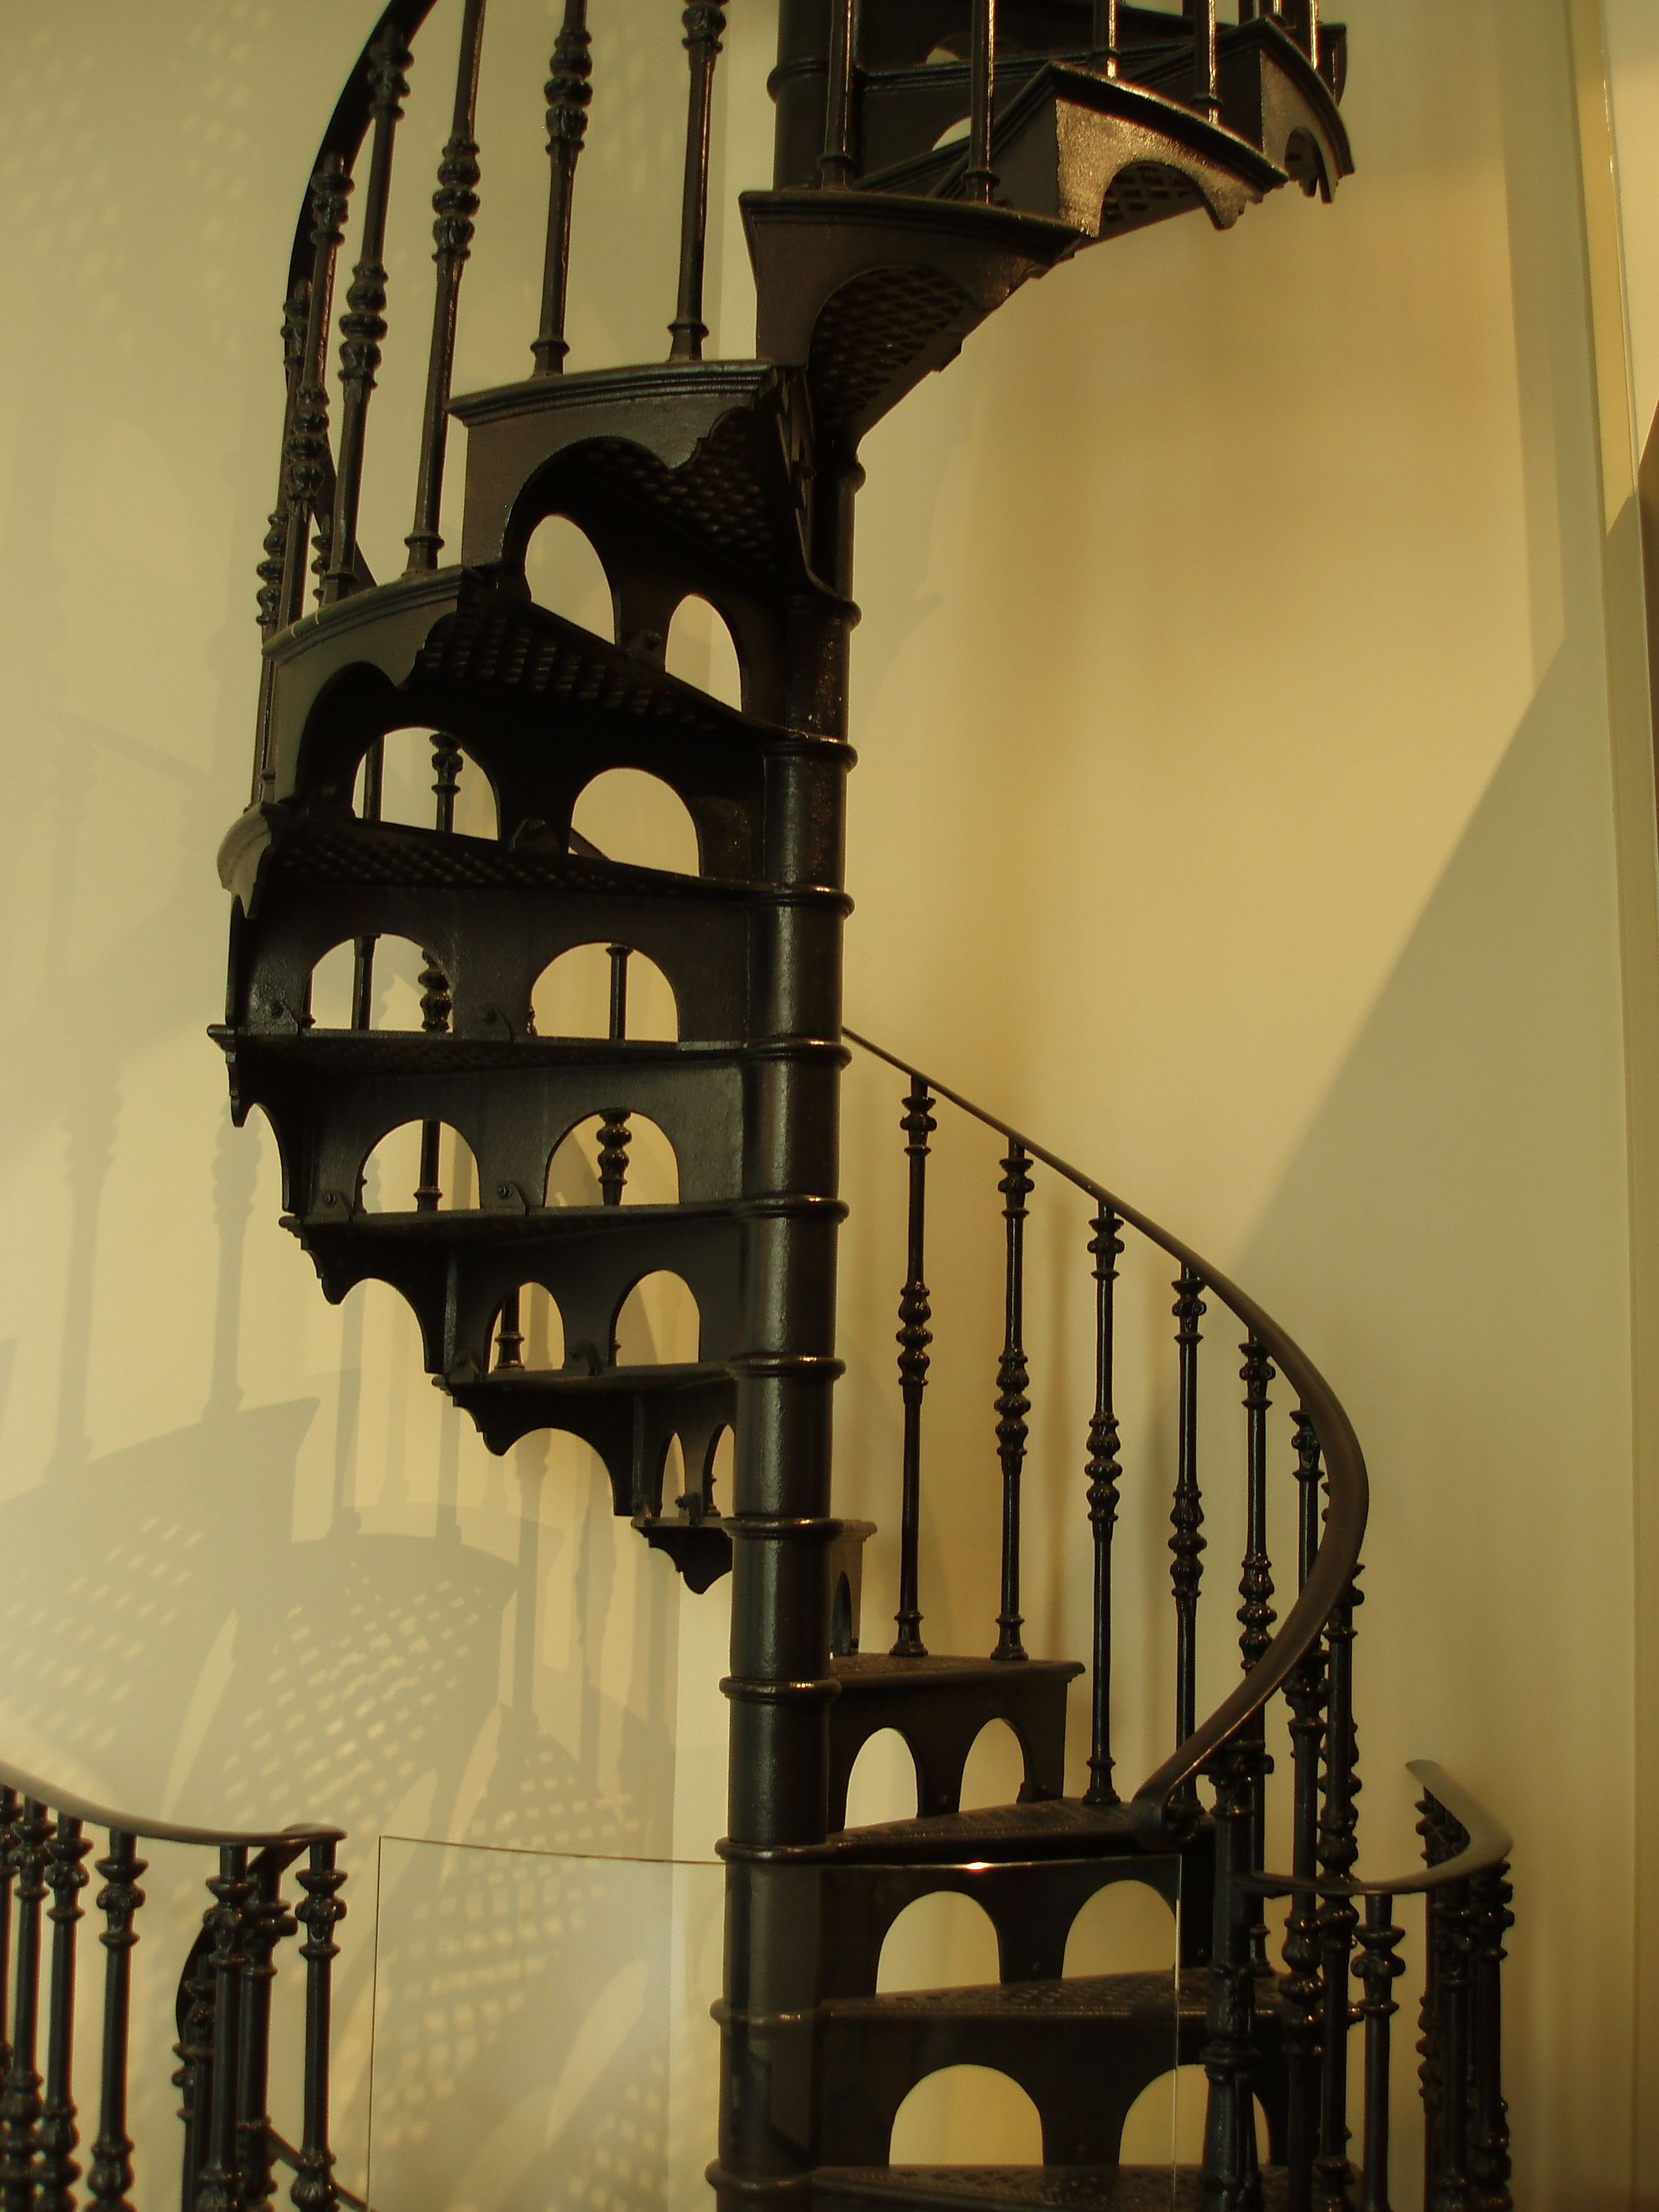 Best Cast Iron Architecture Google Search Spiral Staircase Stairs Woodworking Projects Plans 400 x 300